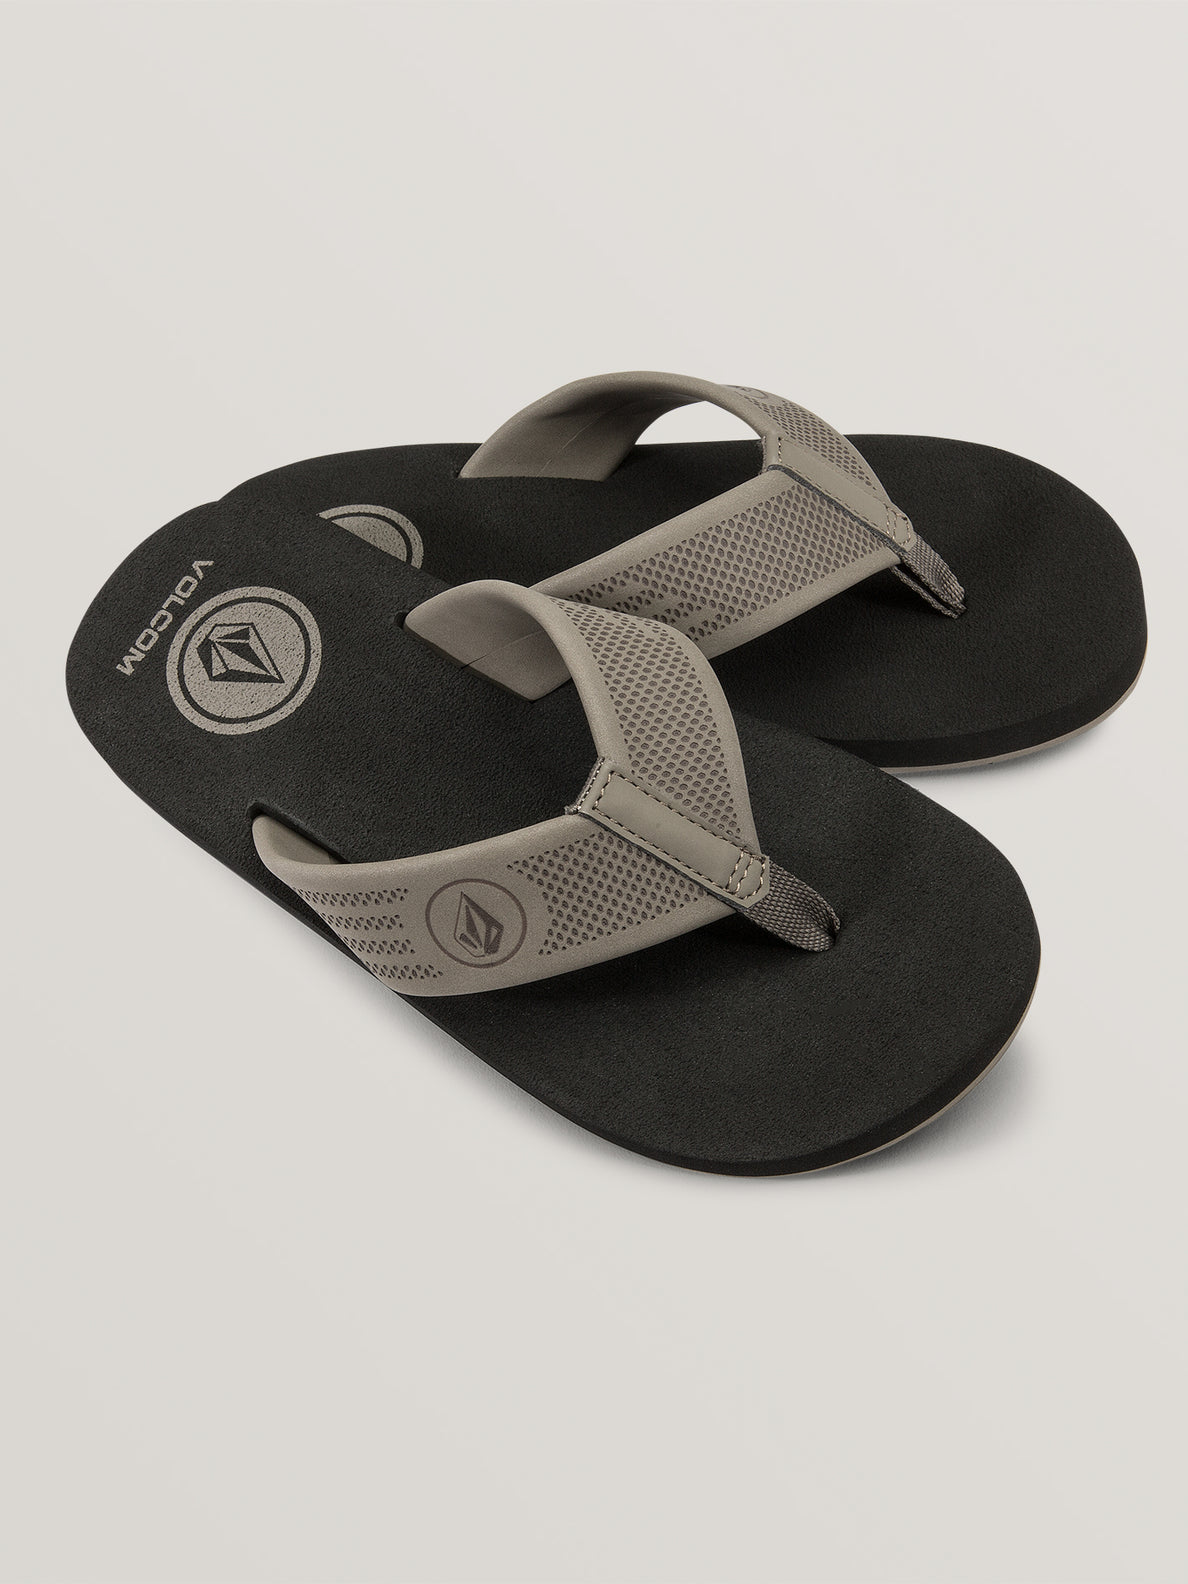 Big Boys Daycation Sandals In Khaki, Front View